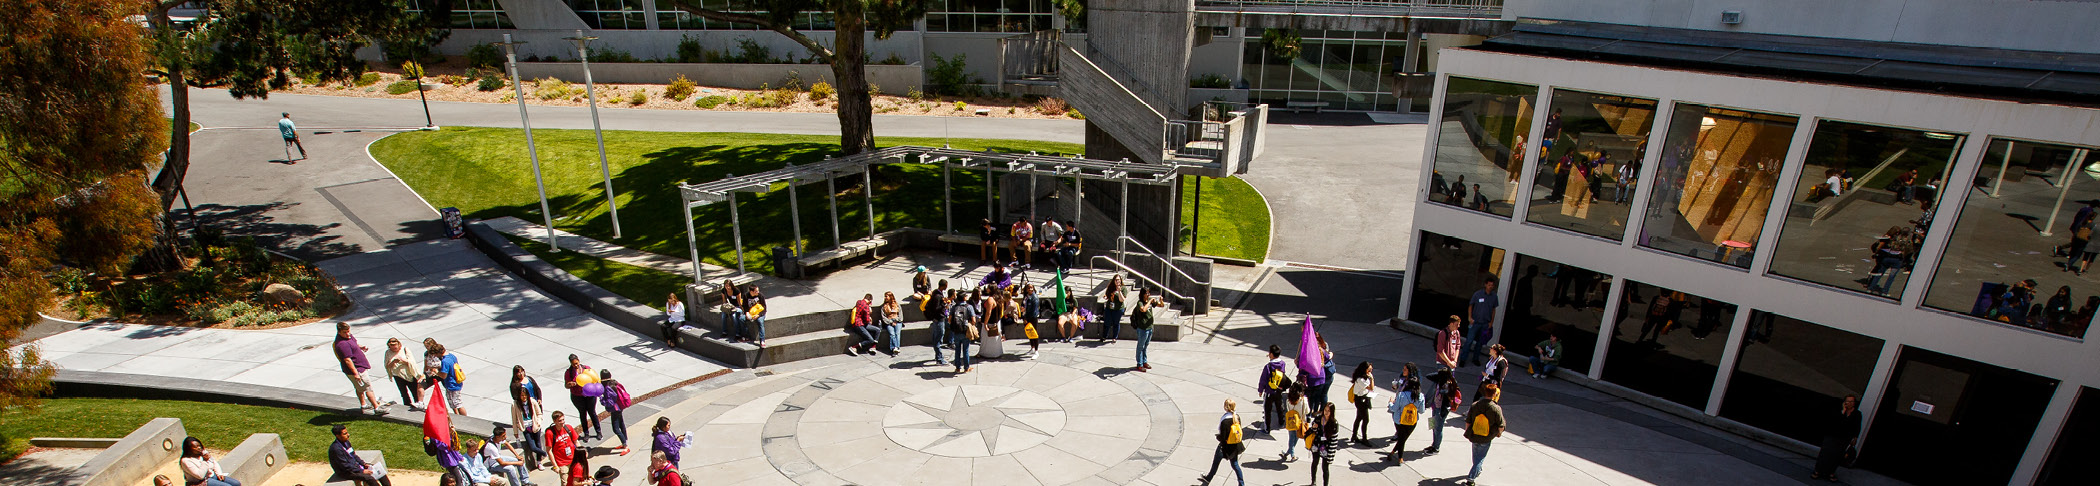 View of San Francisco State's Quad with students